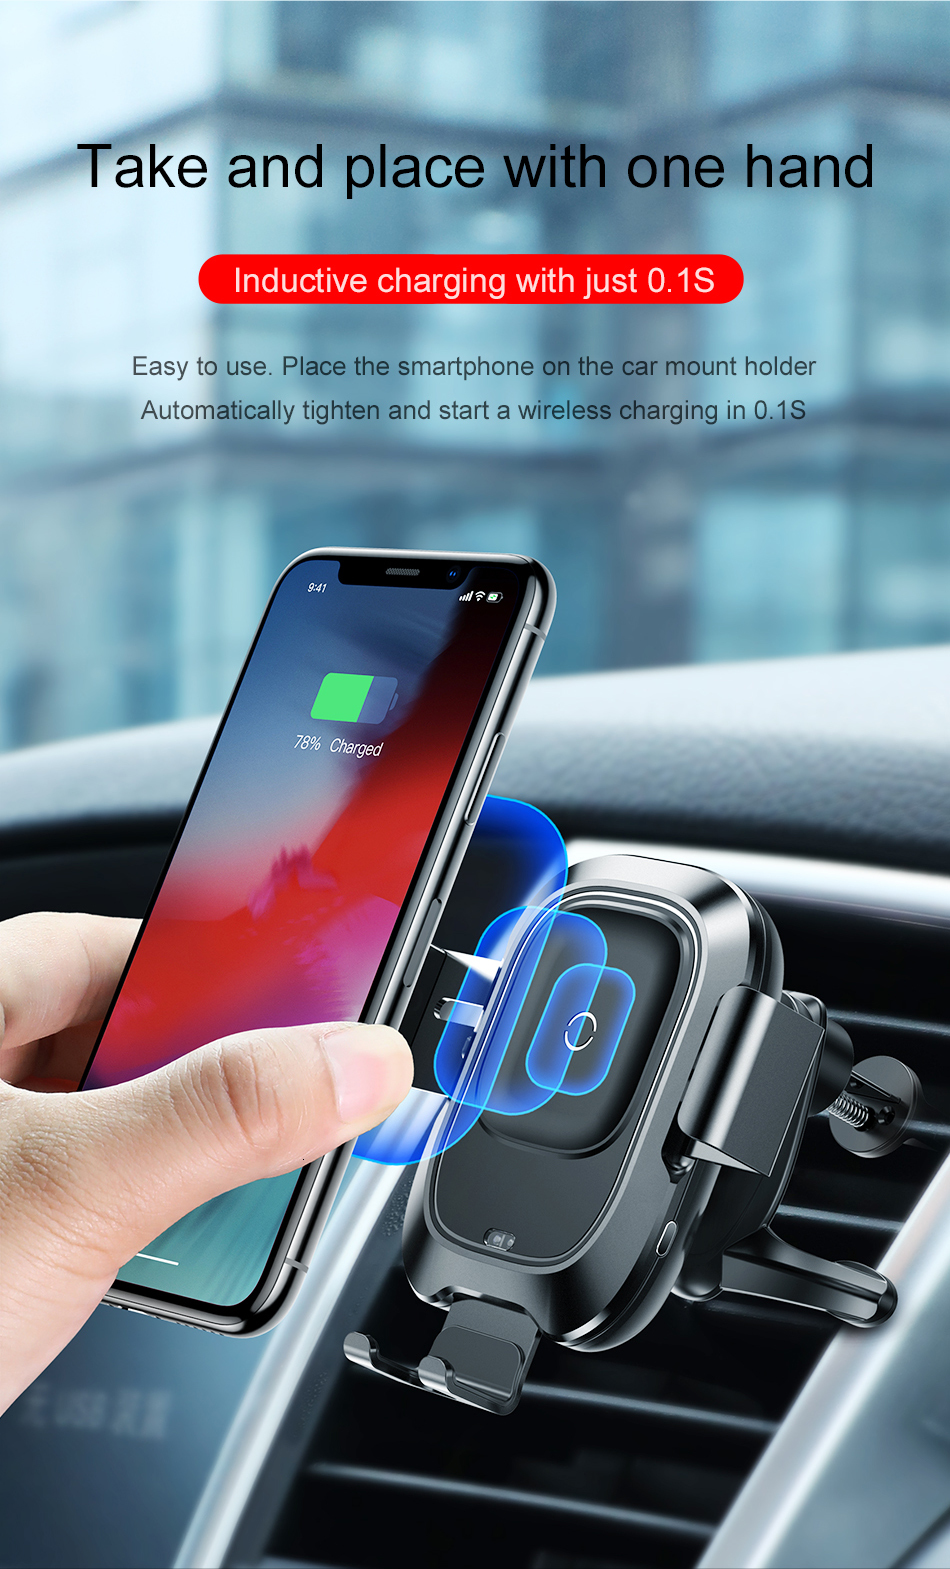 Baseus Qi Car Wireless Charger For iPhone Xs Max Xr X Samsung S10 S9 Intelligent Infrared Fast Wirless Charging Car Phone Holder 5